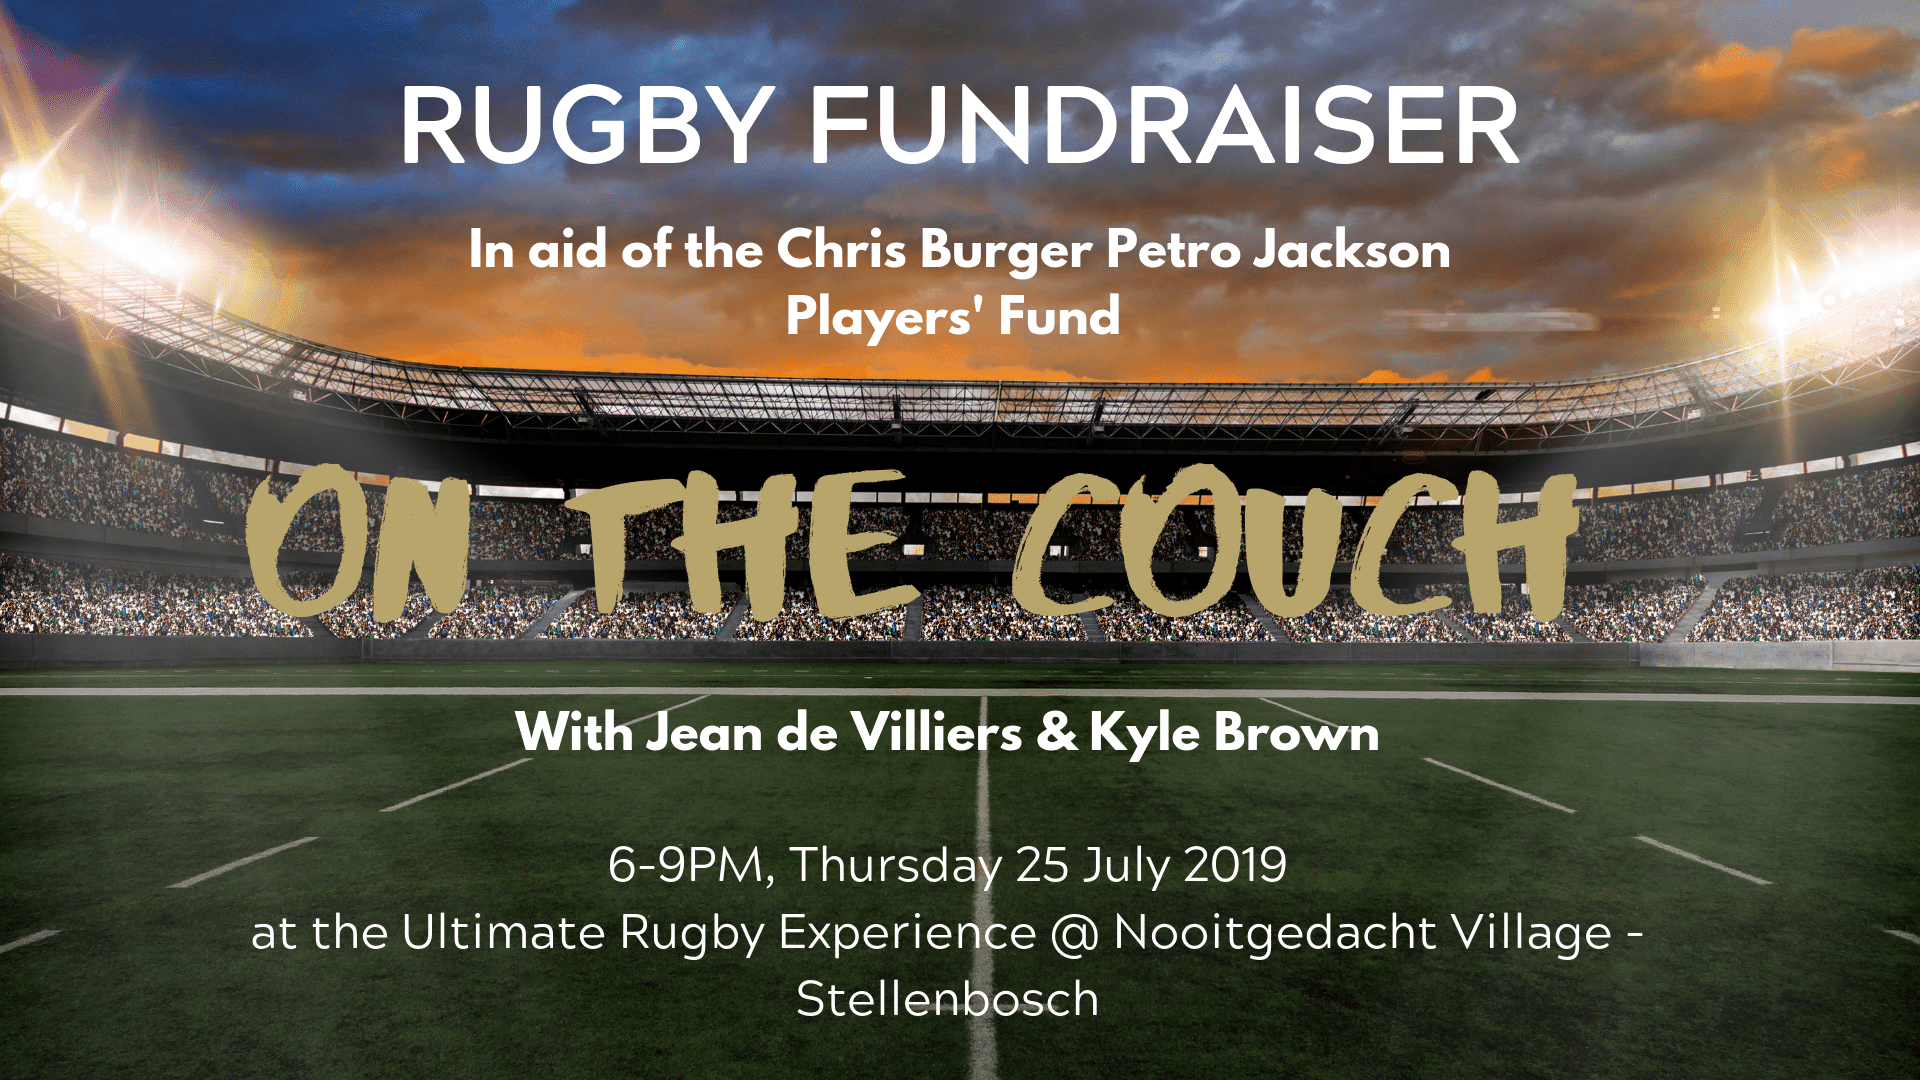 Rugby Fundraiser – Conversations 'On the Couch' with Jean de Villiers & Kyle Brown